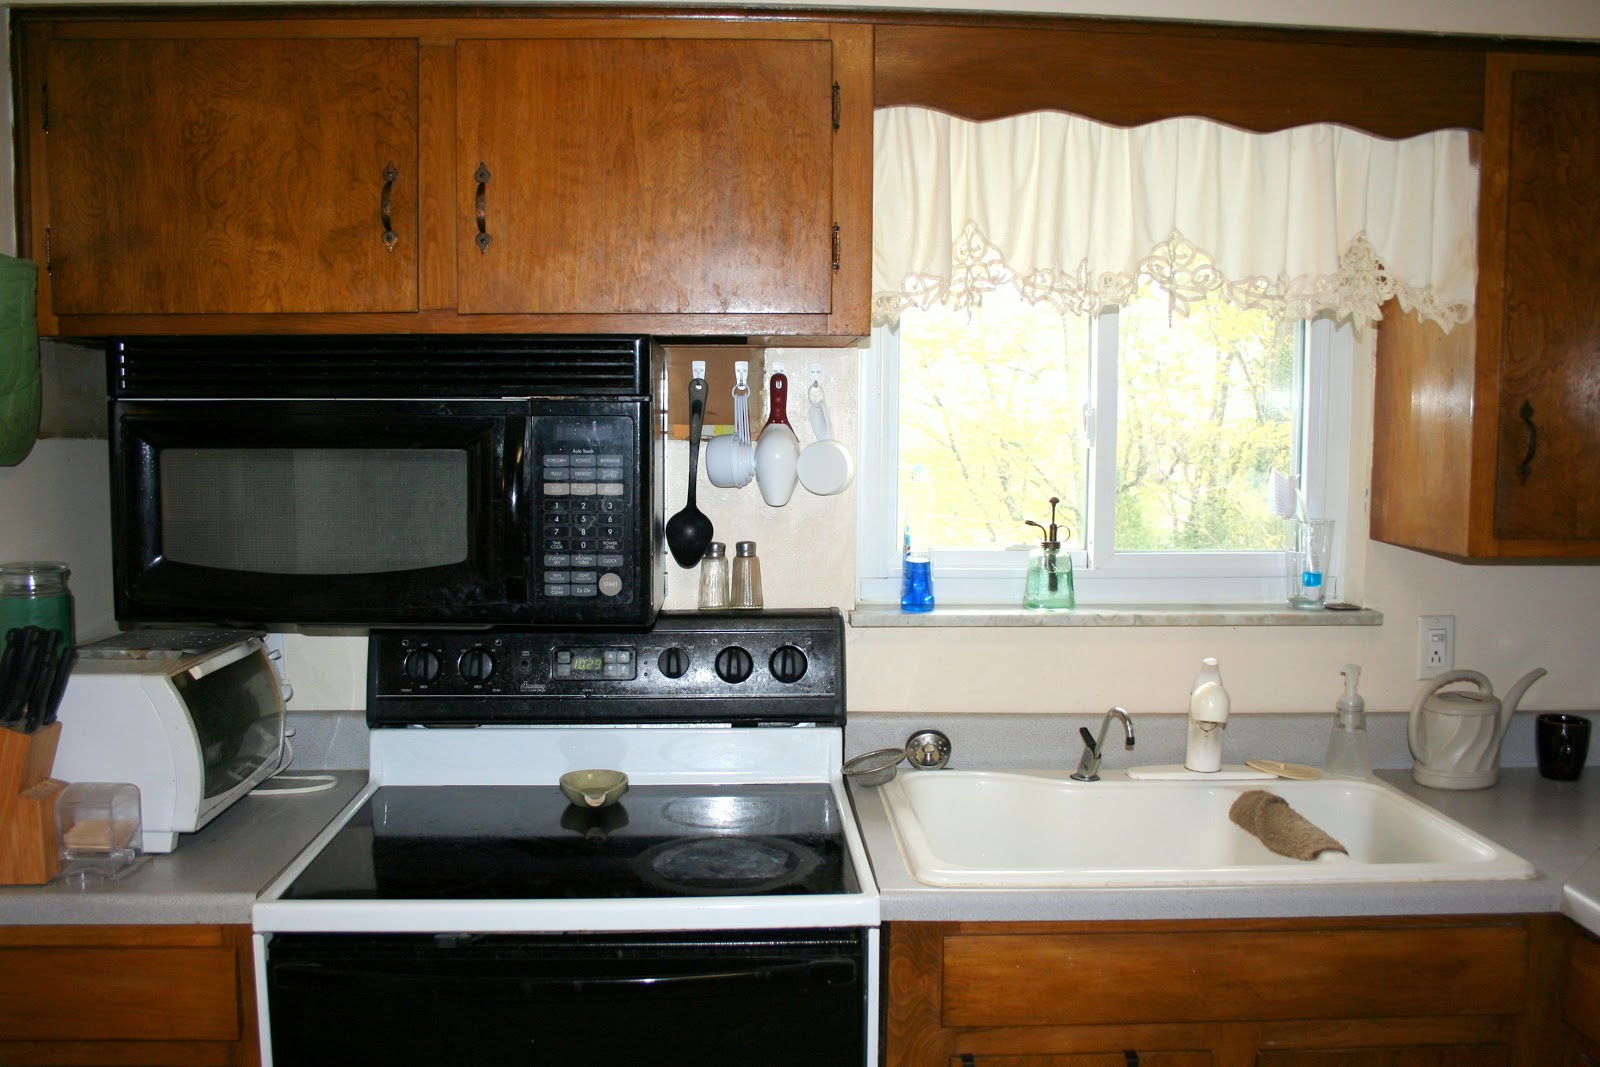 Kitchen stove next to sink images